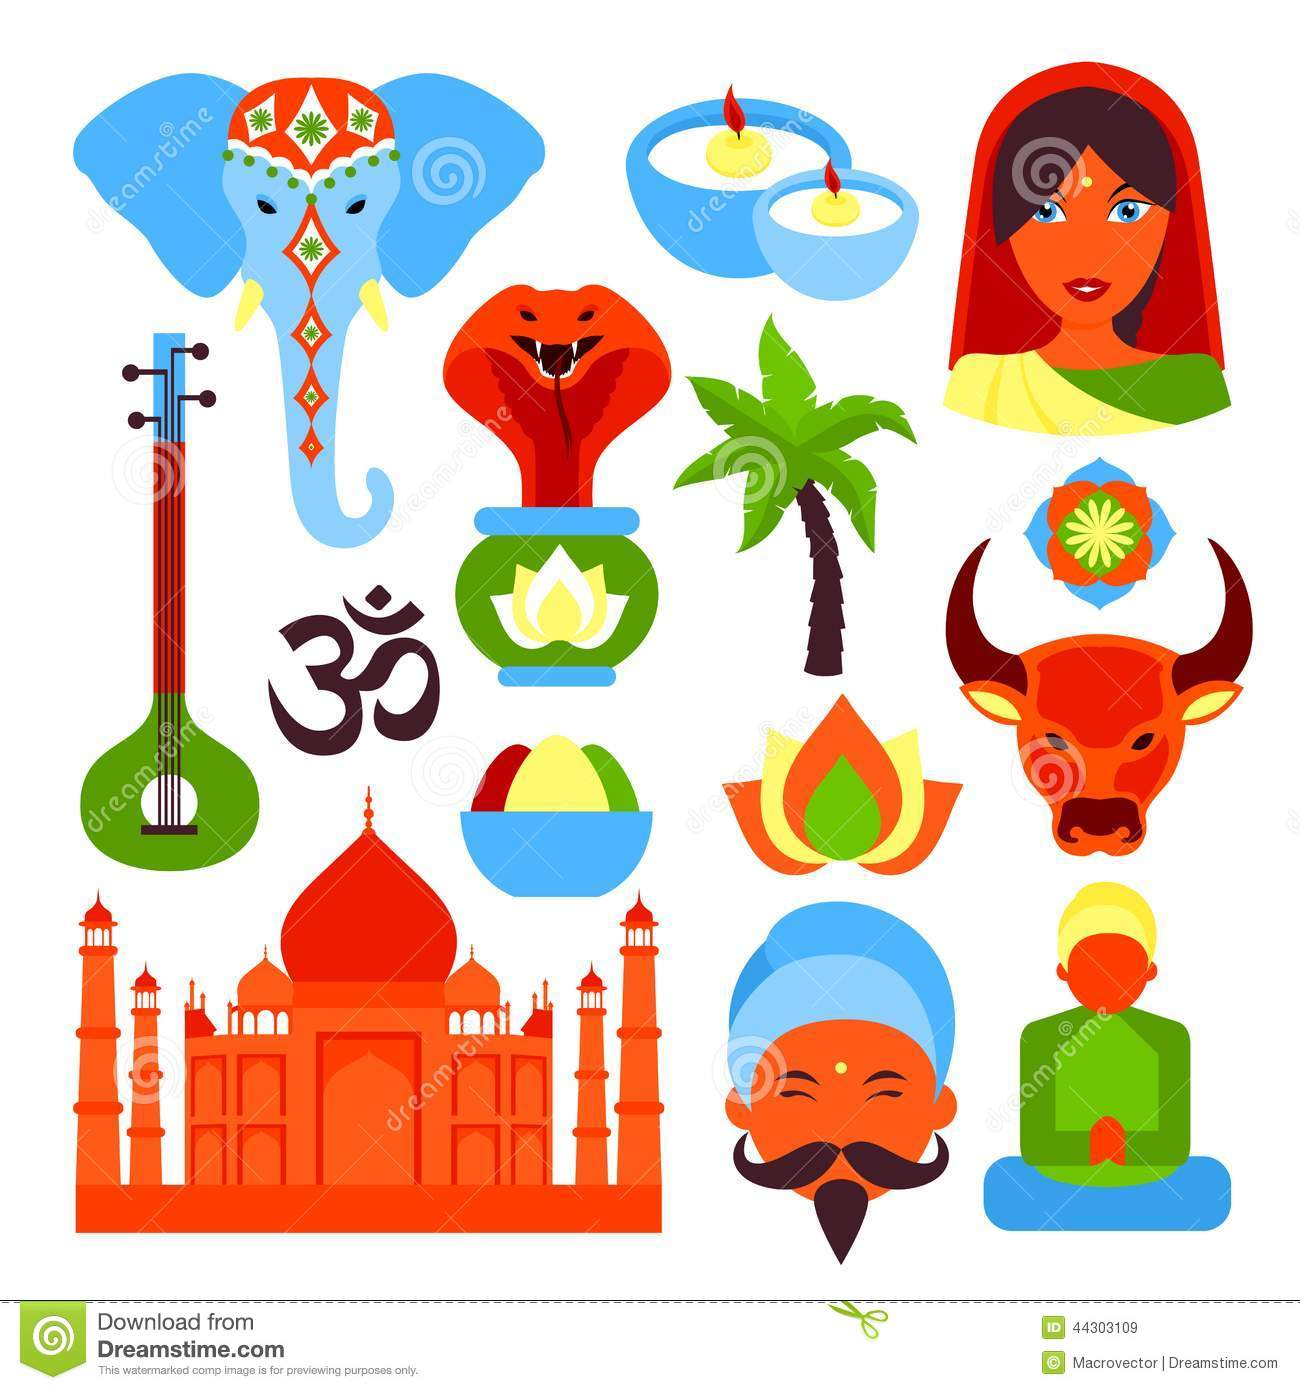 India Symbols Set Illustration 44303109 Megapixl